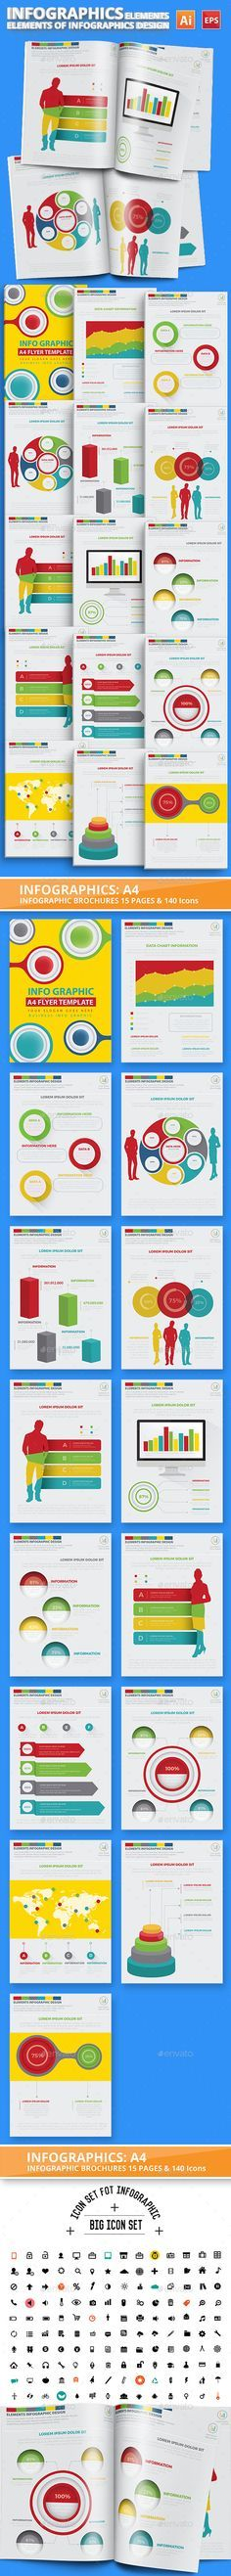 Elements Of Infographic Design Template Vector EPS, AI Illustrator. Download here: http://graphicriver.net/item/elements-of-infographic-design/16665505?ref=ksioks